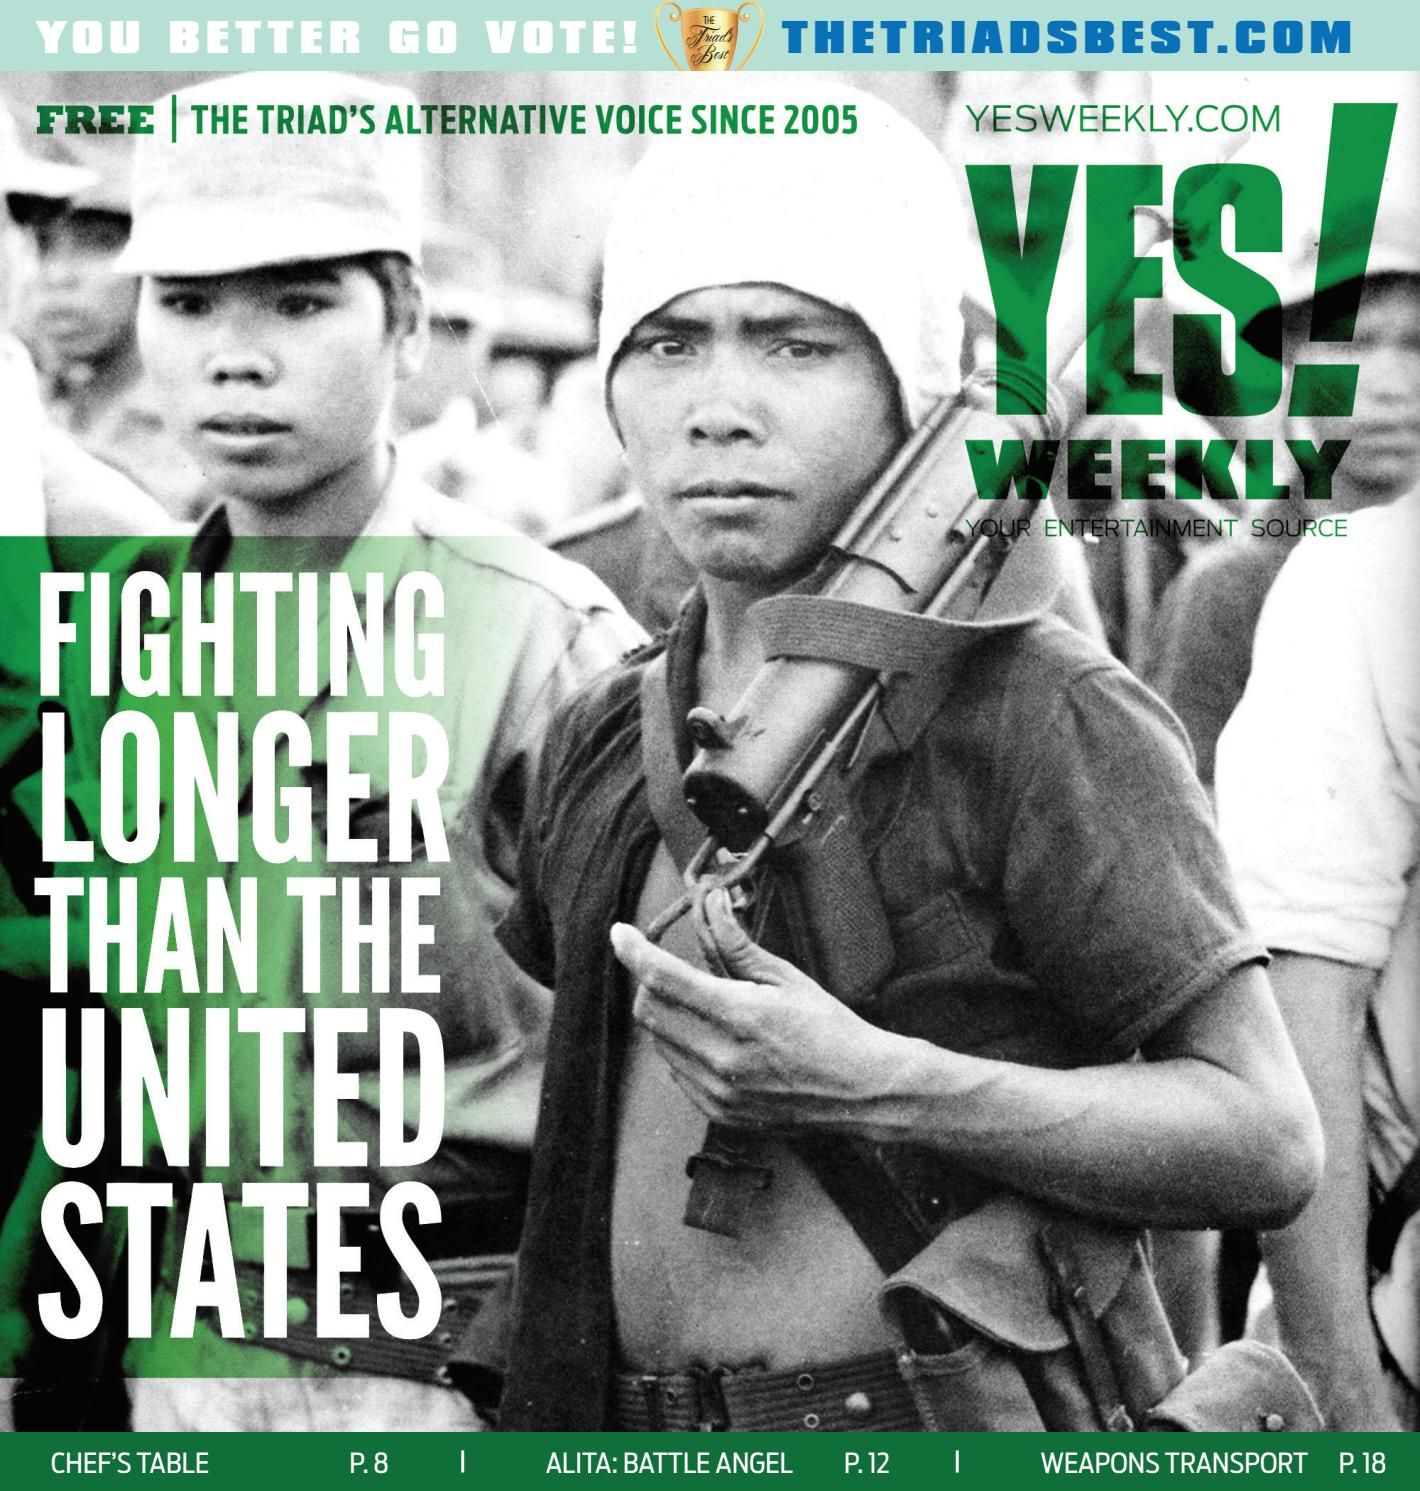 YES! Weekly - February 20, 2019 by YES! Weekly - issuu